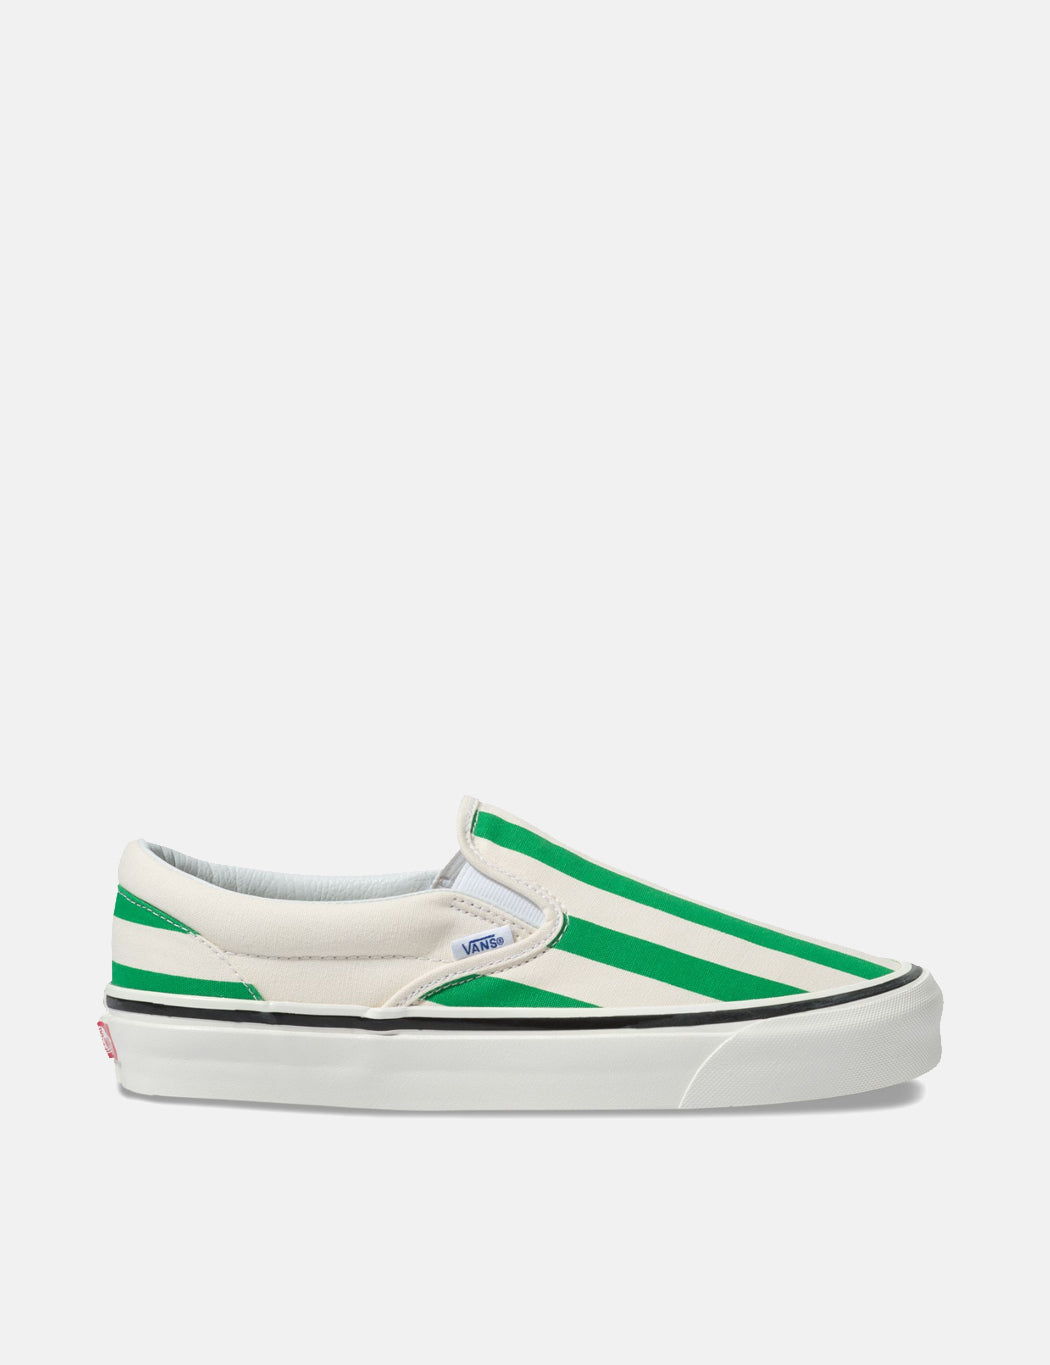 7b6f8128af Vans Classic Slip-On 98 DX (Canvas) - White Emerald Big Stripes ...